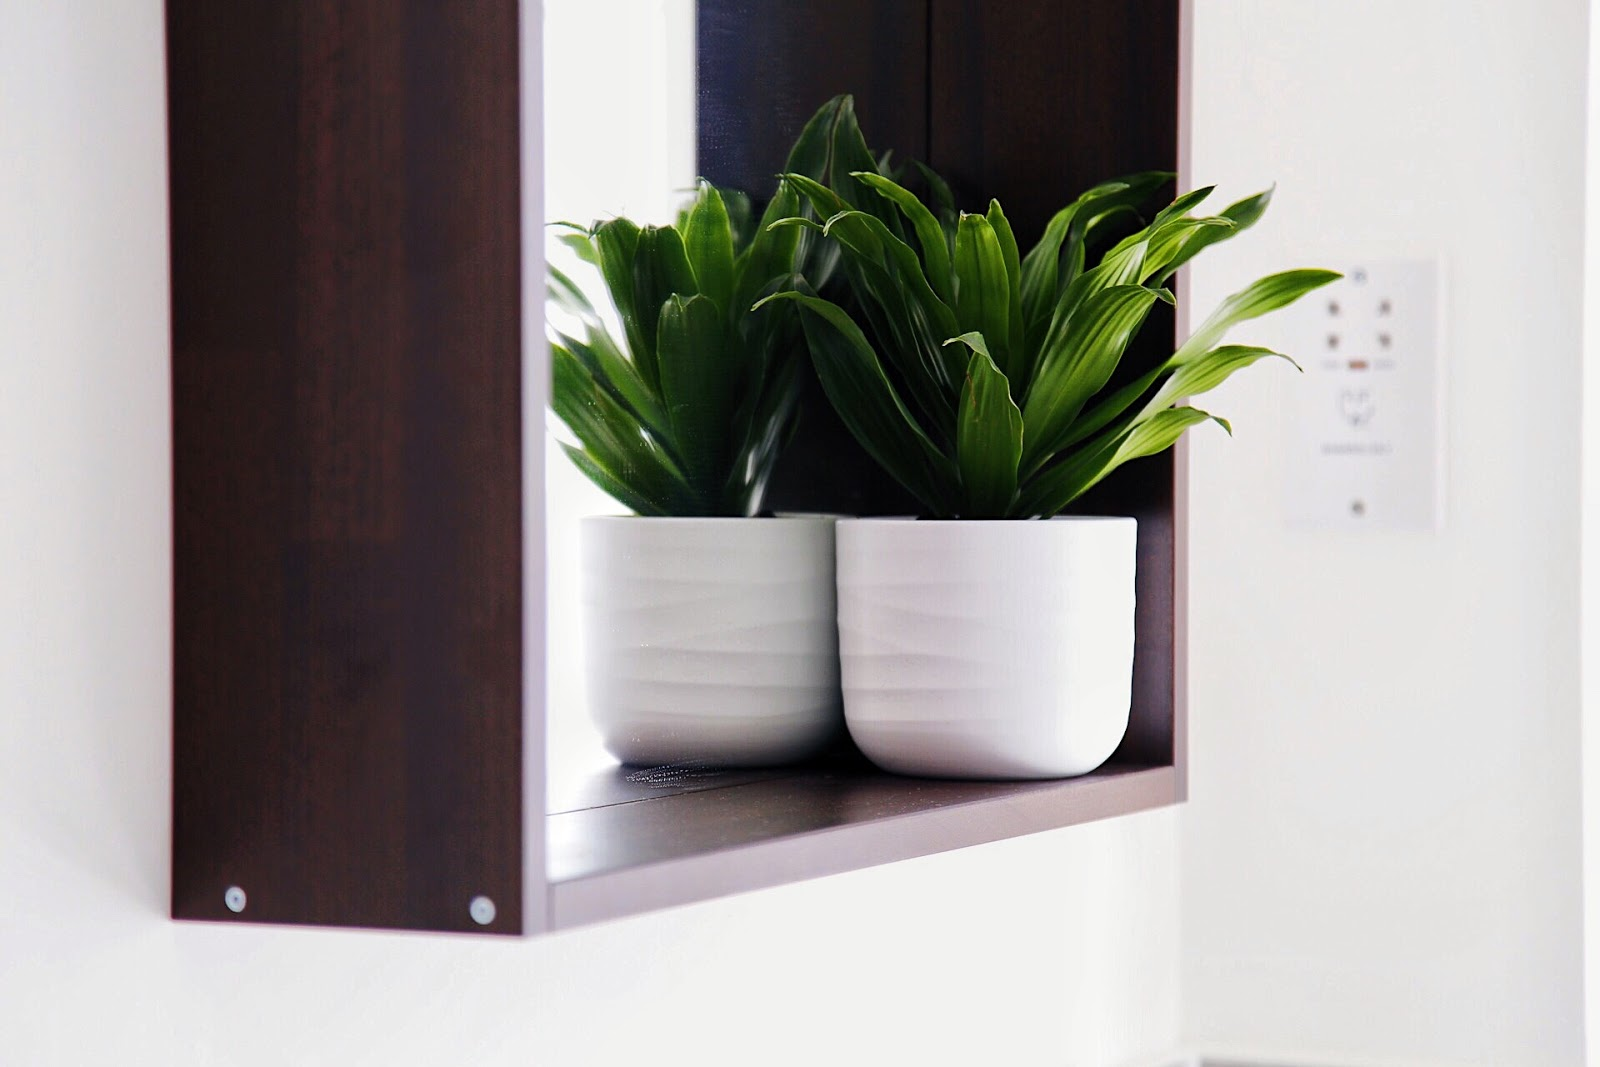 Leafy plant in white pot on IKEA Molger mirror.